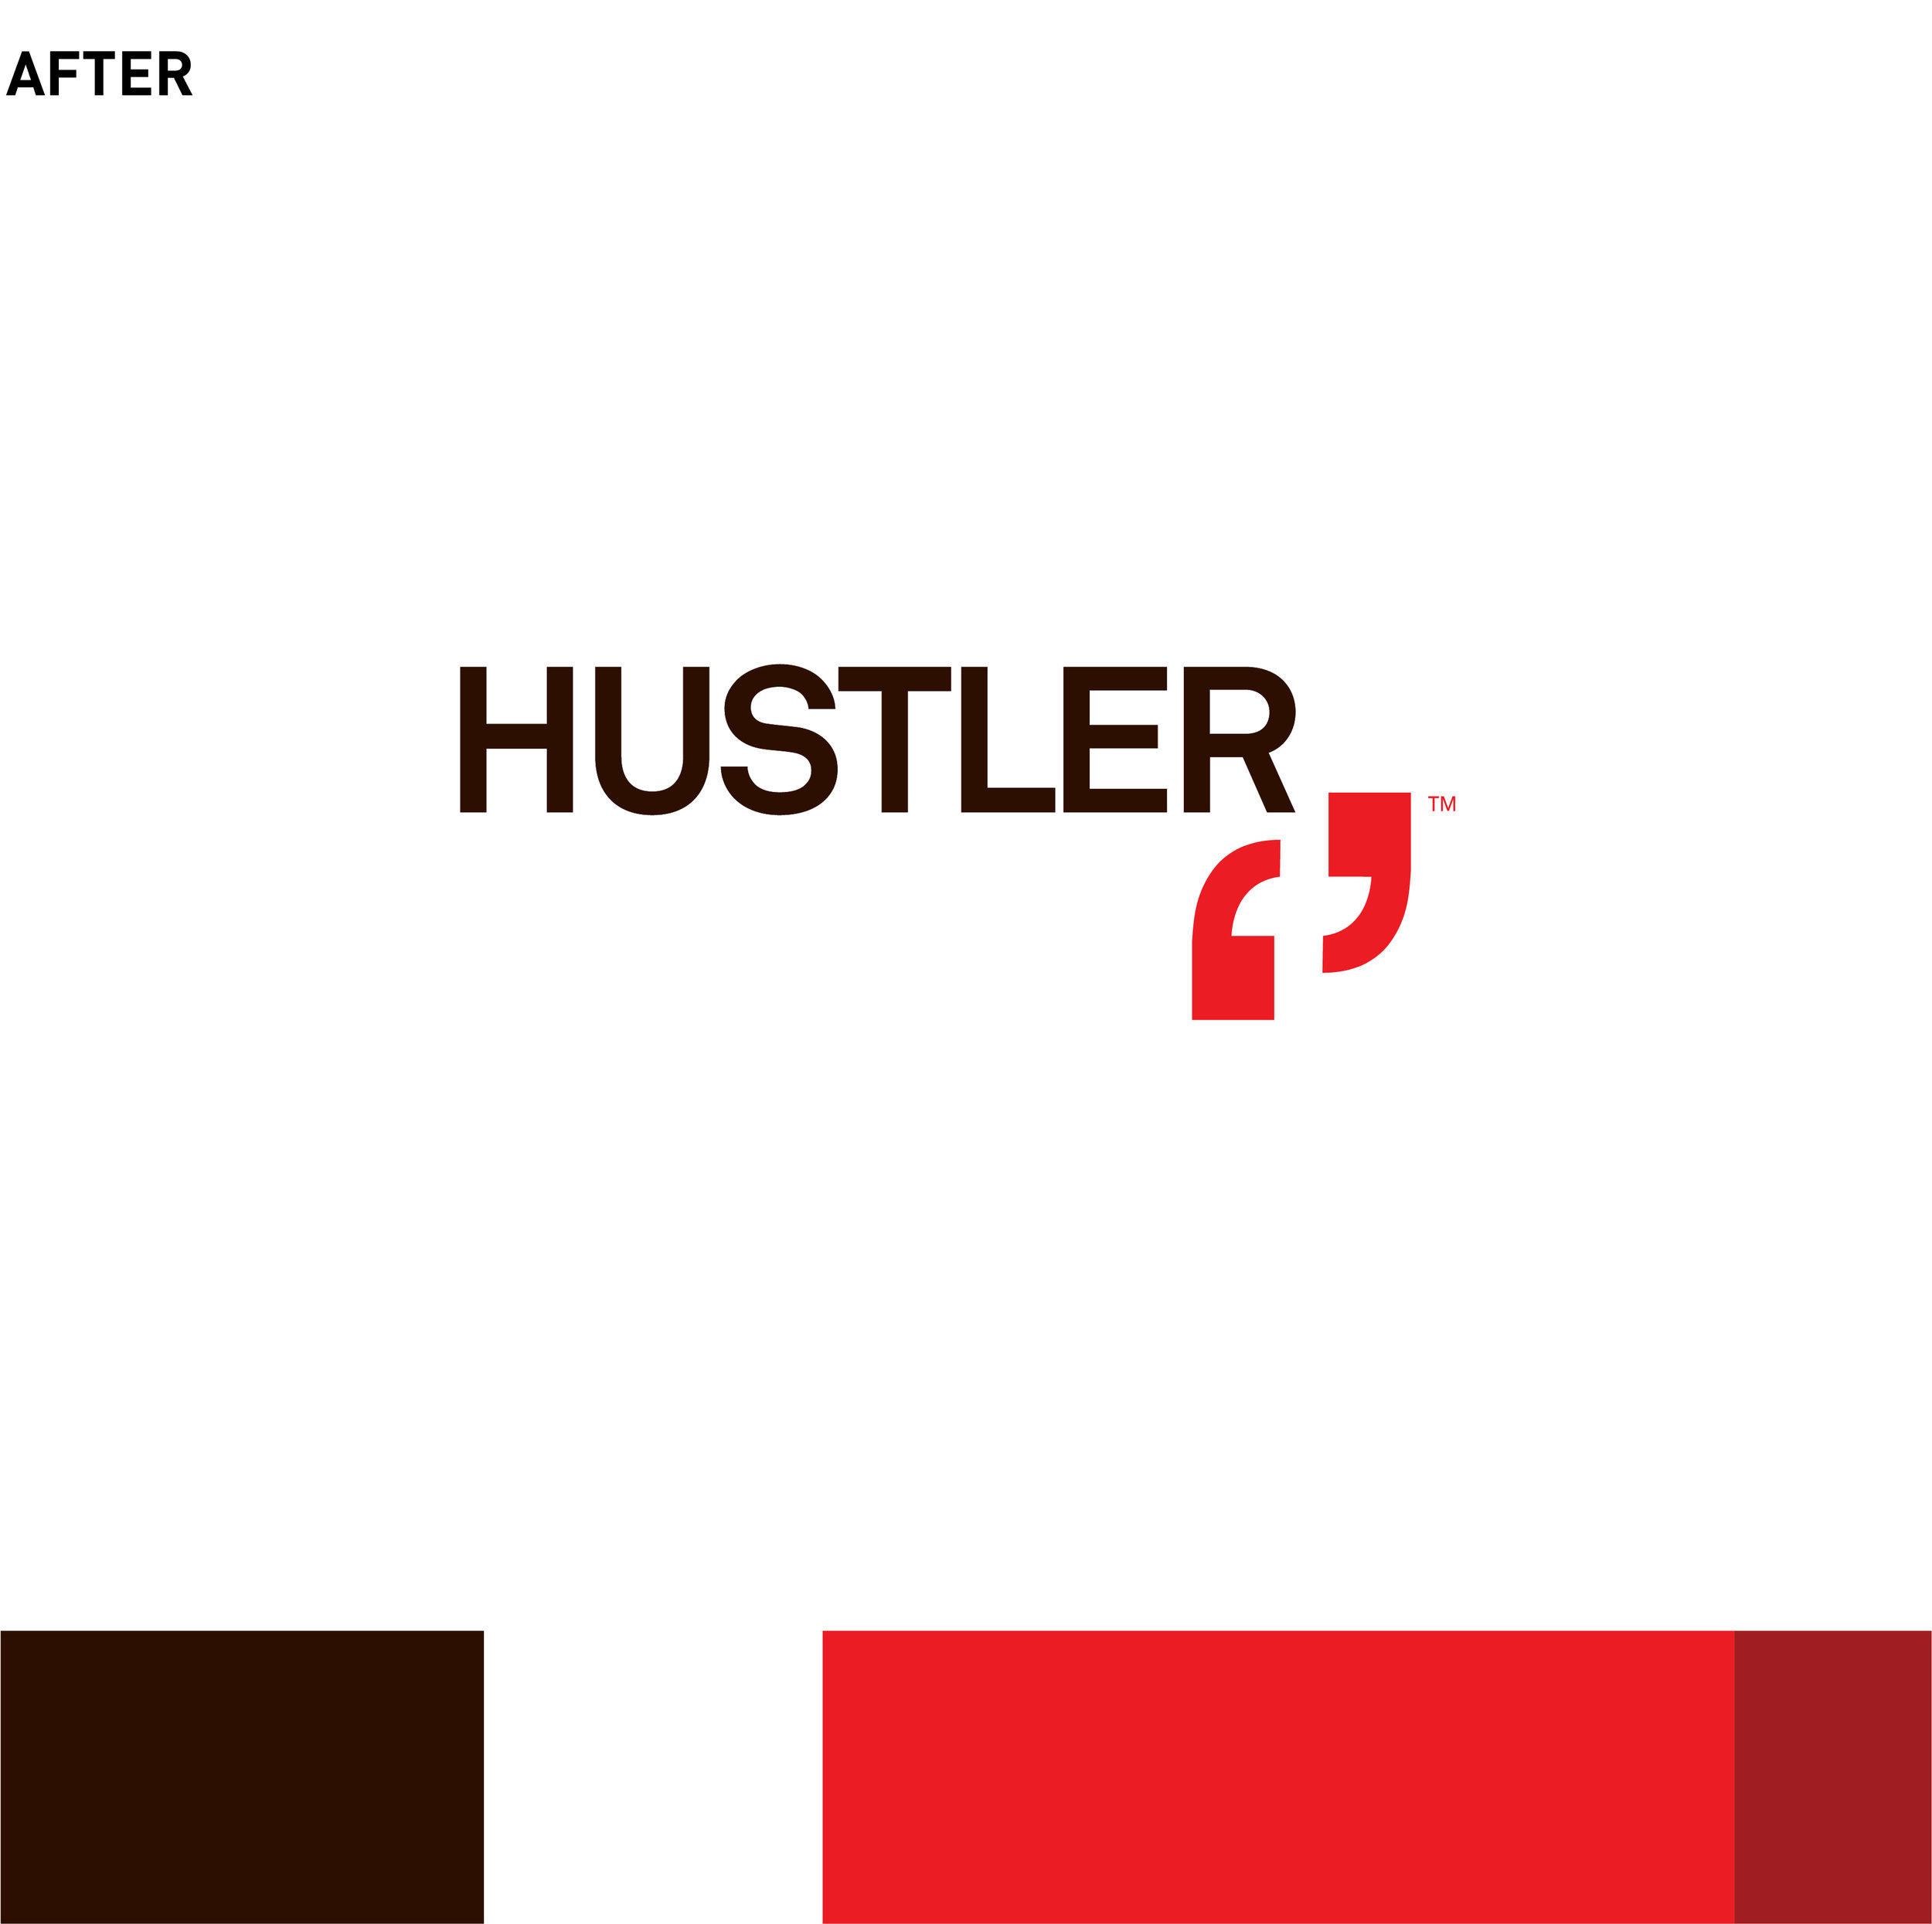 HUSTLER | logo, packaging, identity, brand design | luxury sex and personal products